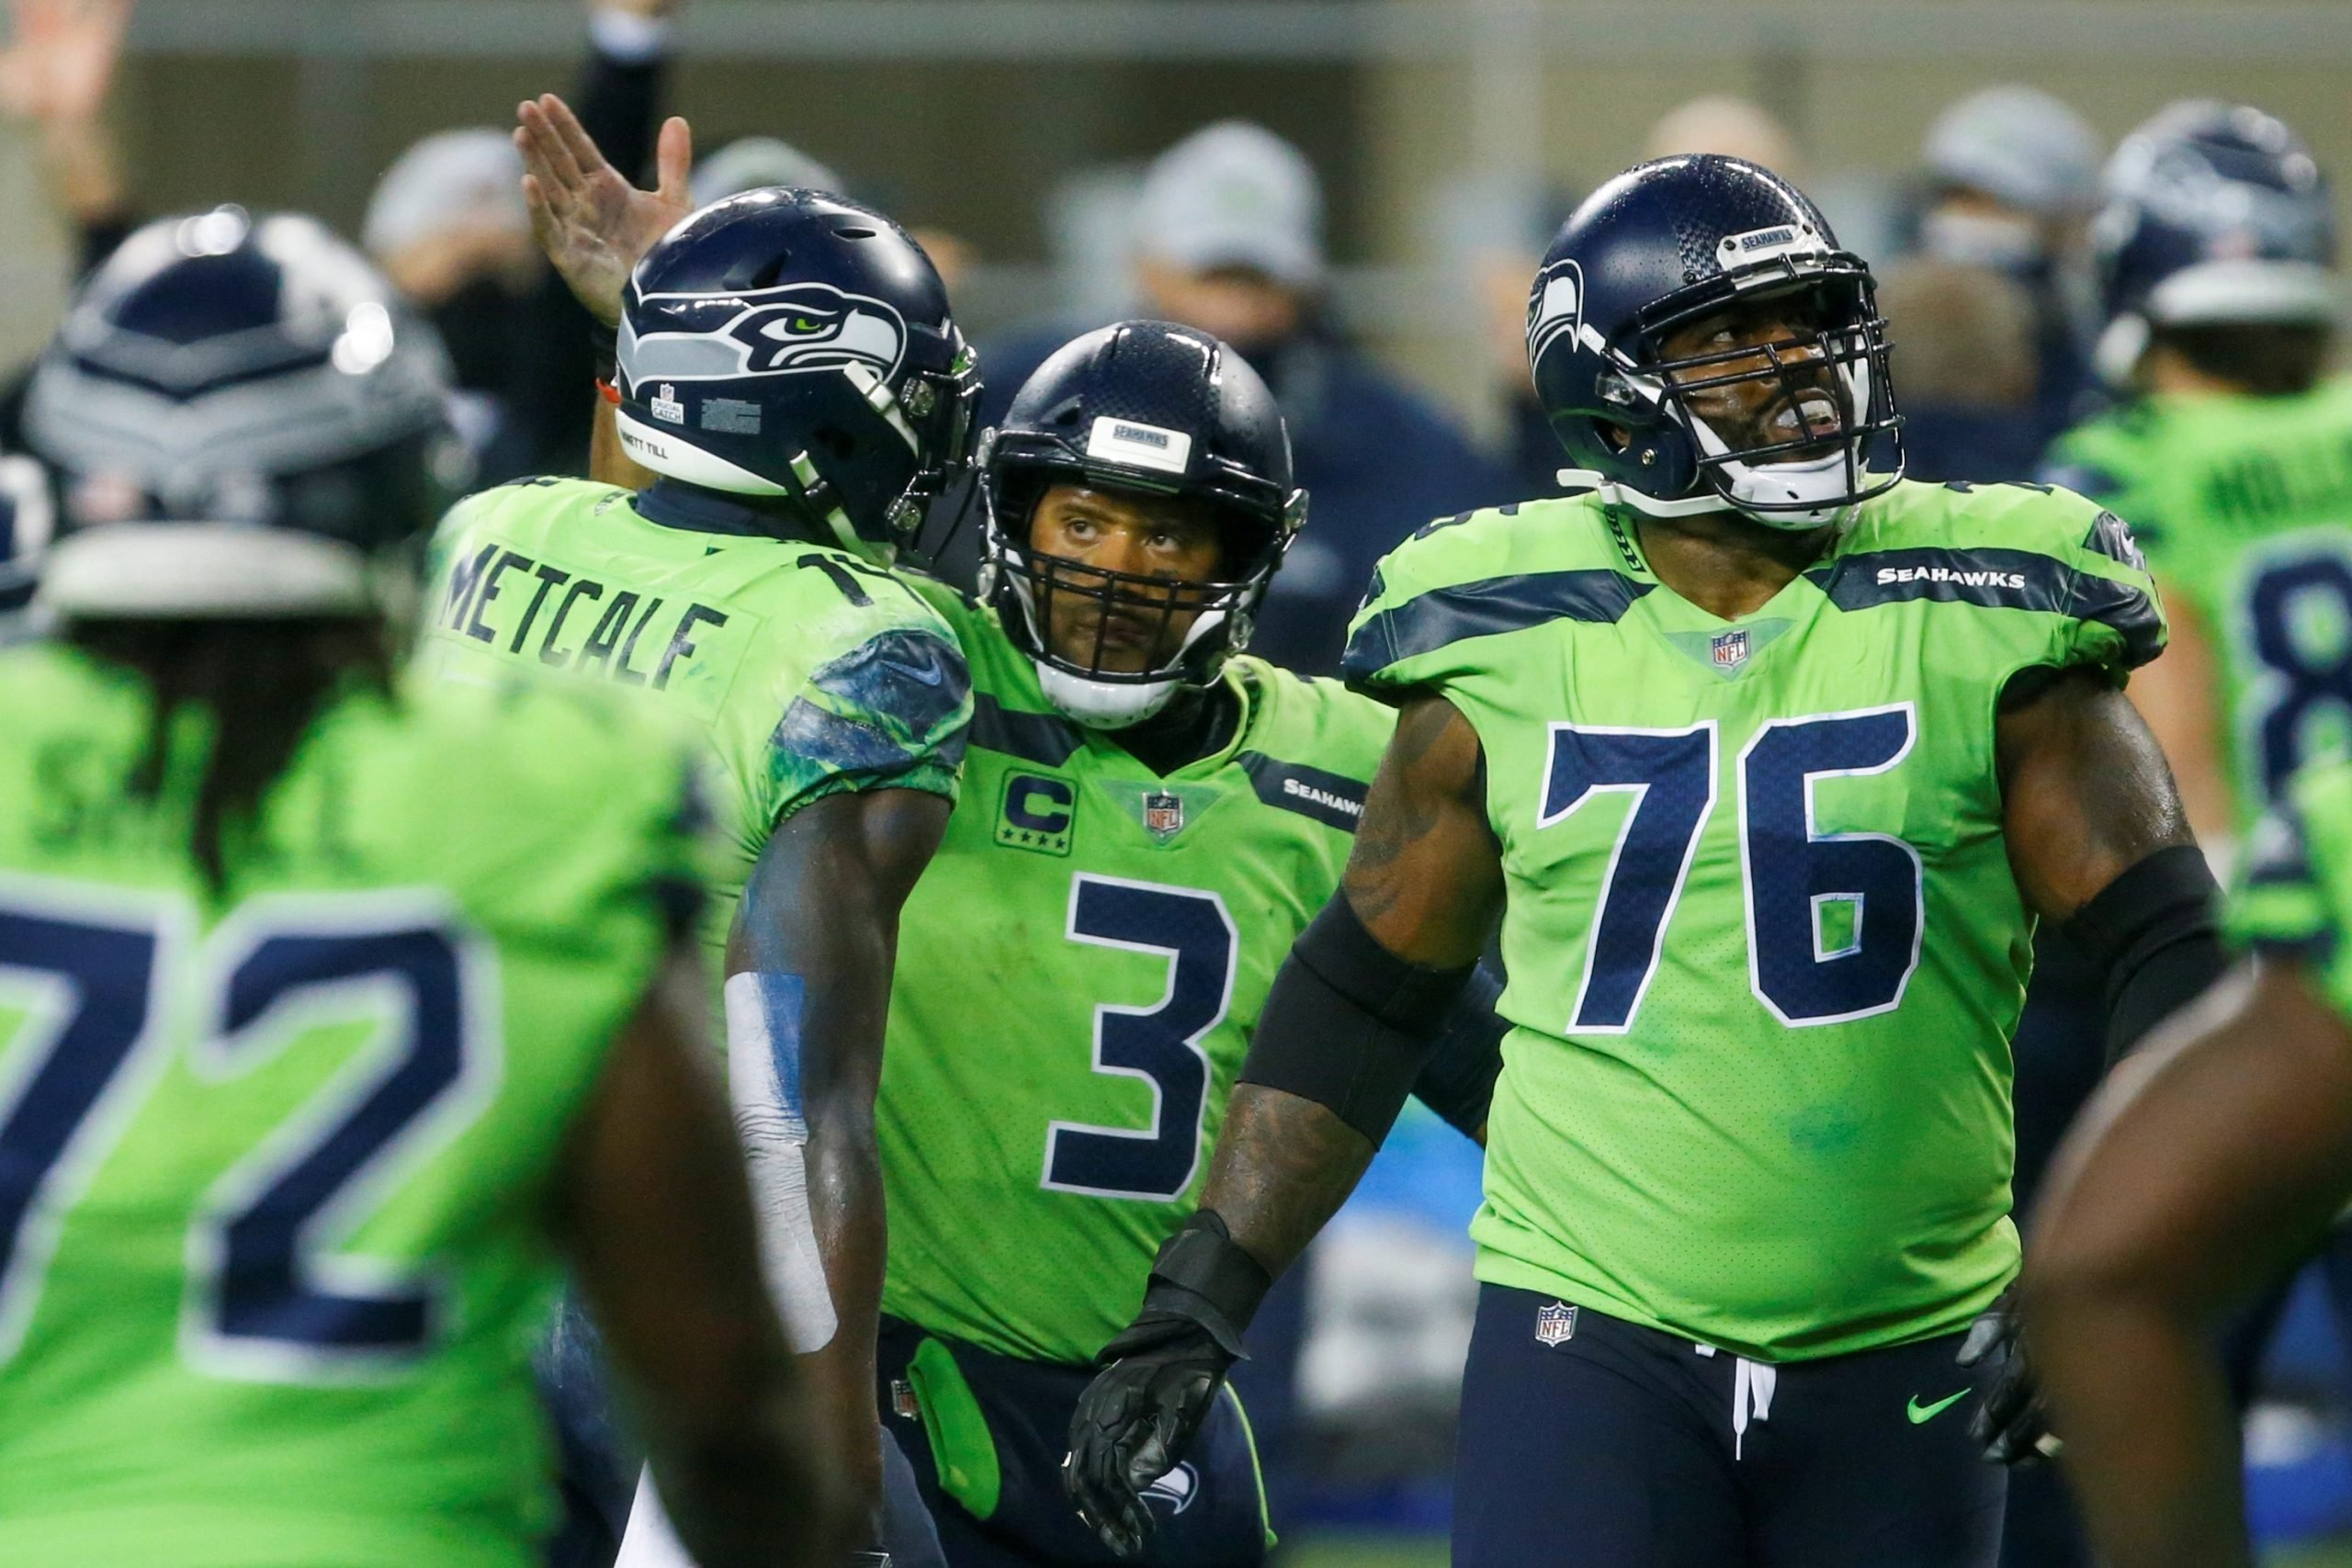 Mvp Leader Russell Wilson Leads Seattle Seahawks Into Sunday Night Game Vs Arizona Cardinals Casino Org Mvp Leader Russell Wilson Leads Seattle Seahawks Vs Arizona Cardinals